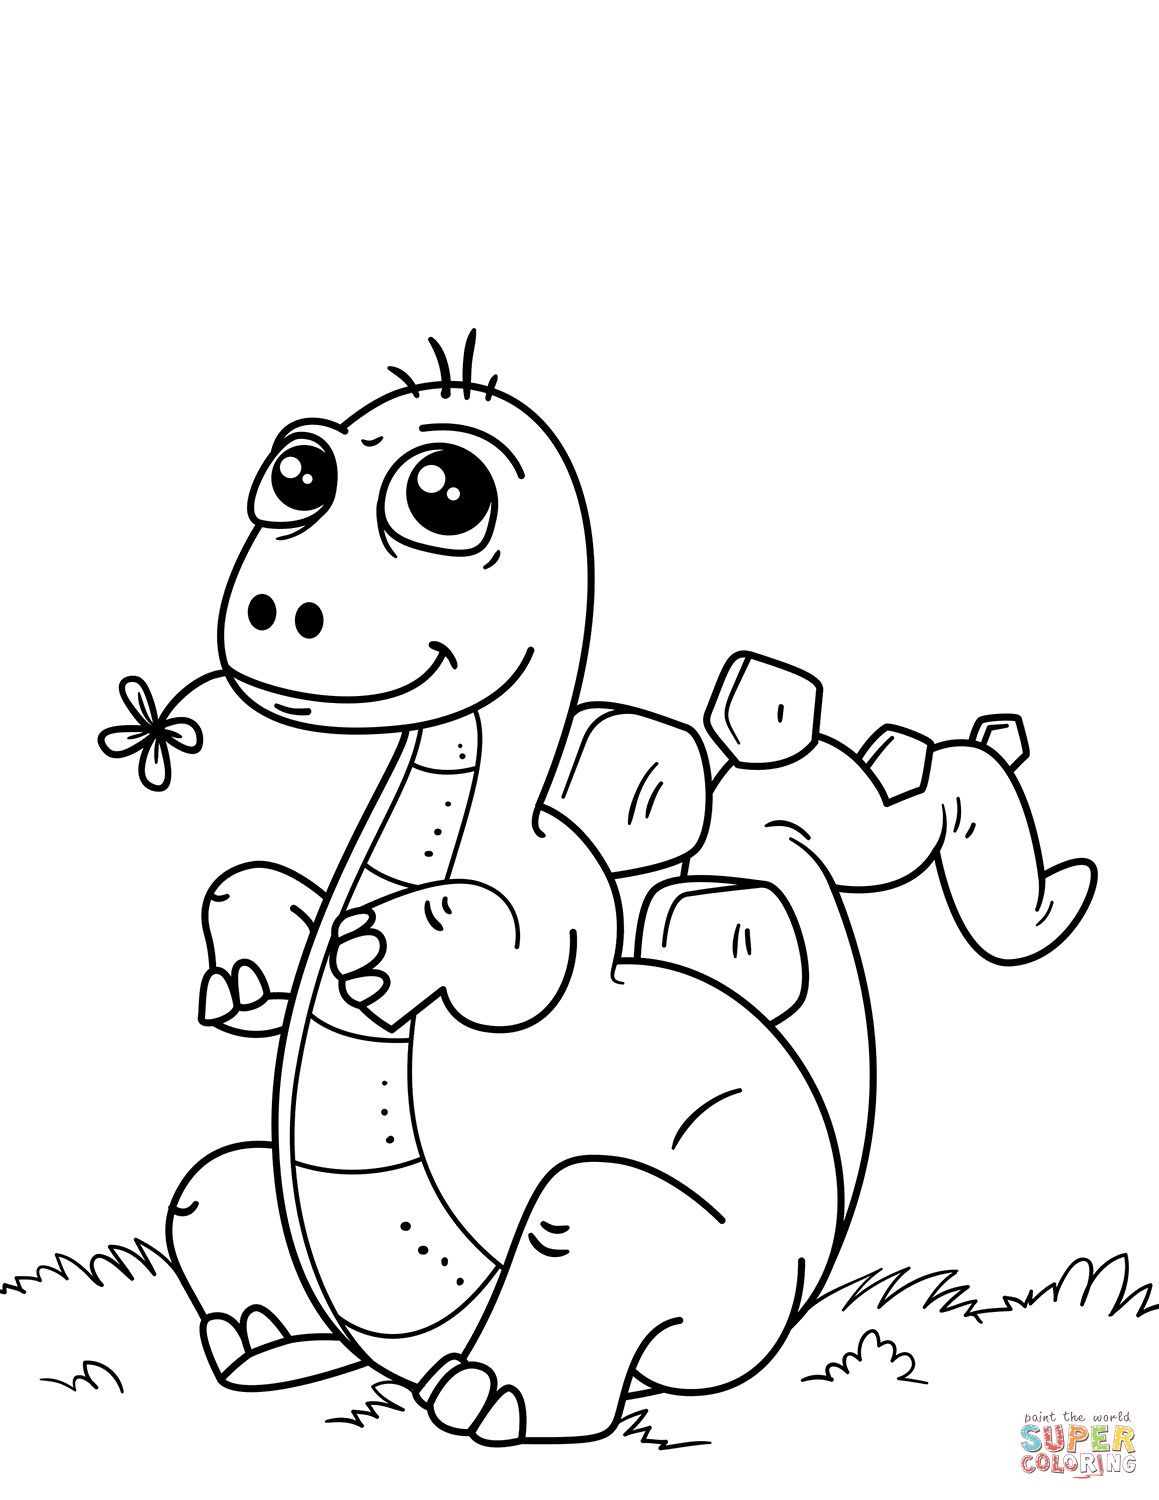 colouring in dinosaurs coloring pages dinosaur free printable coloring pages in colouring dinosaurs